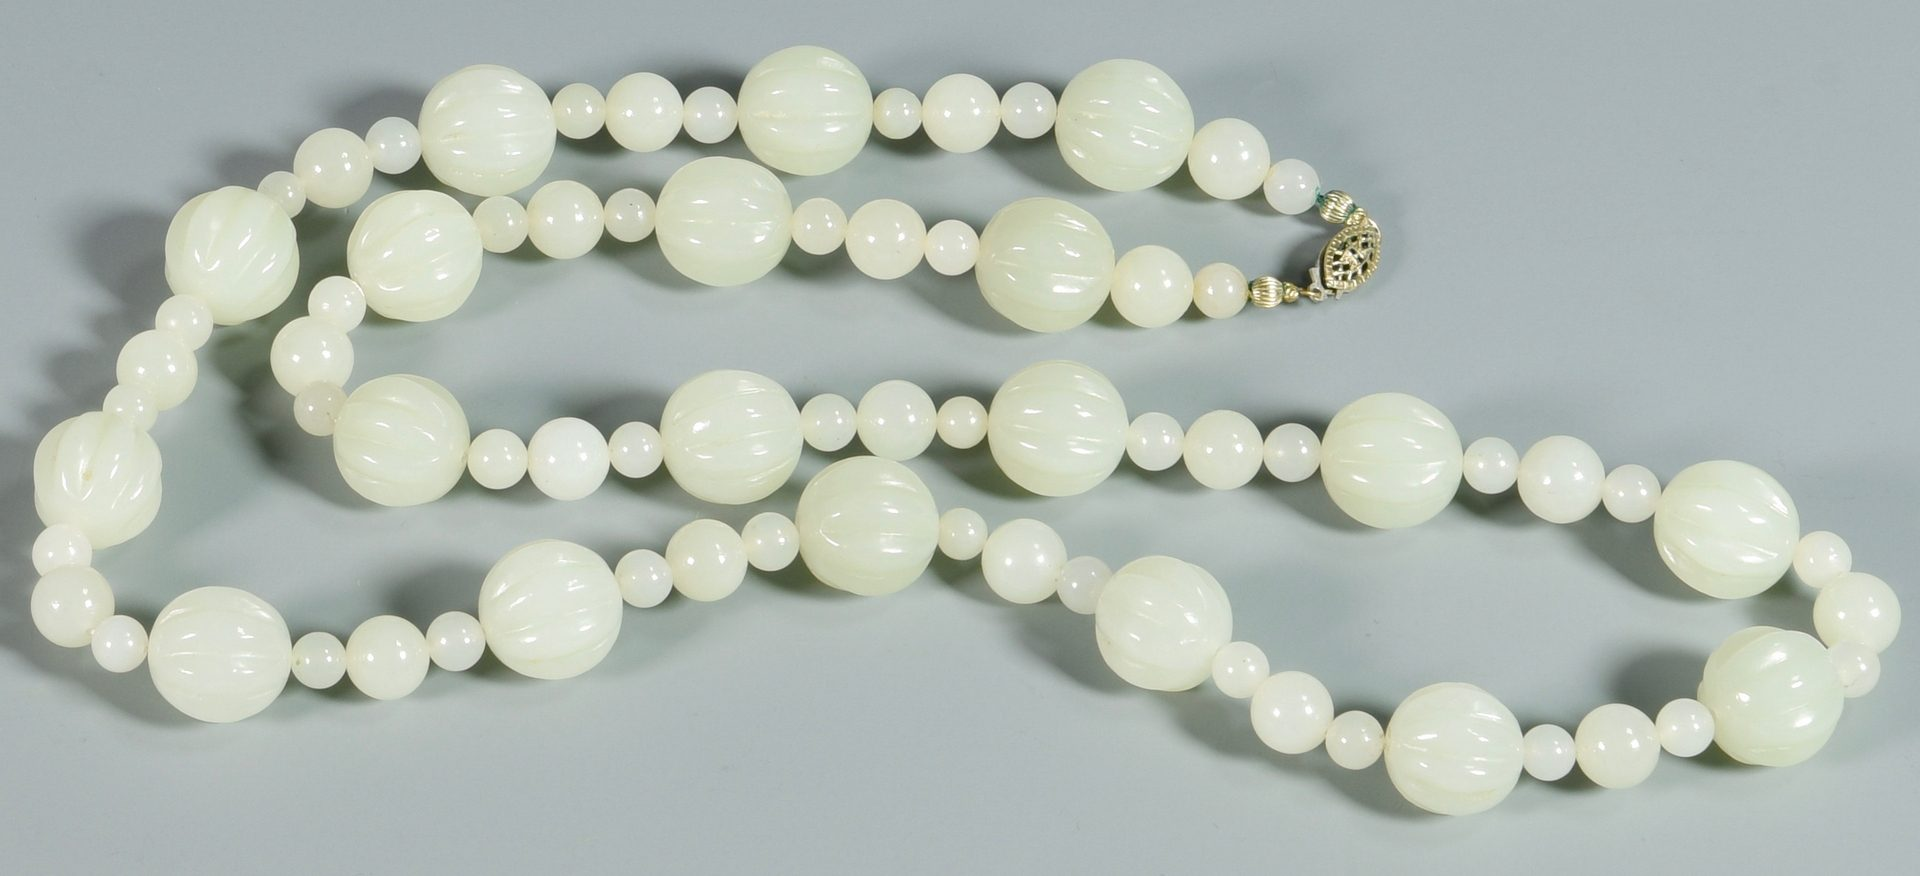 Lot 38: Chinese Celadon Beaded Jade Necklace